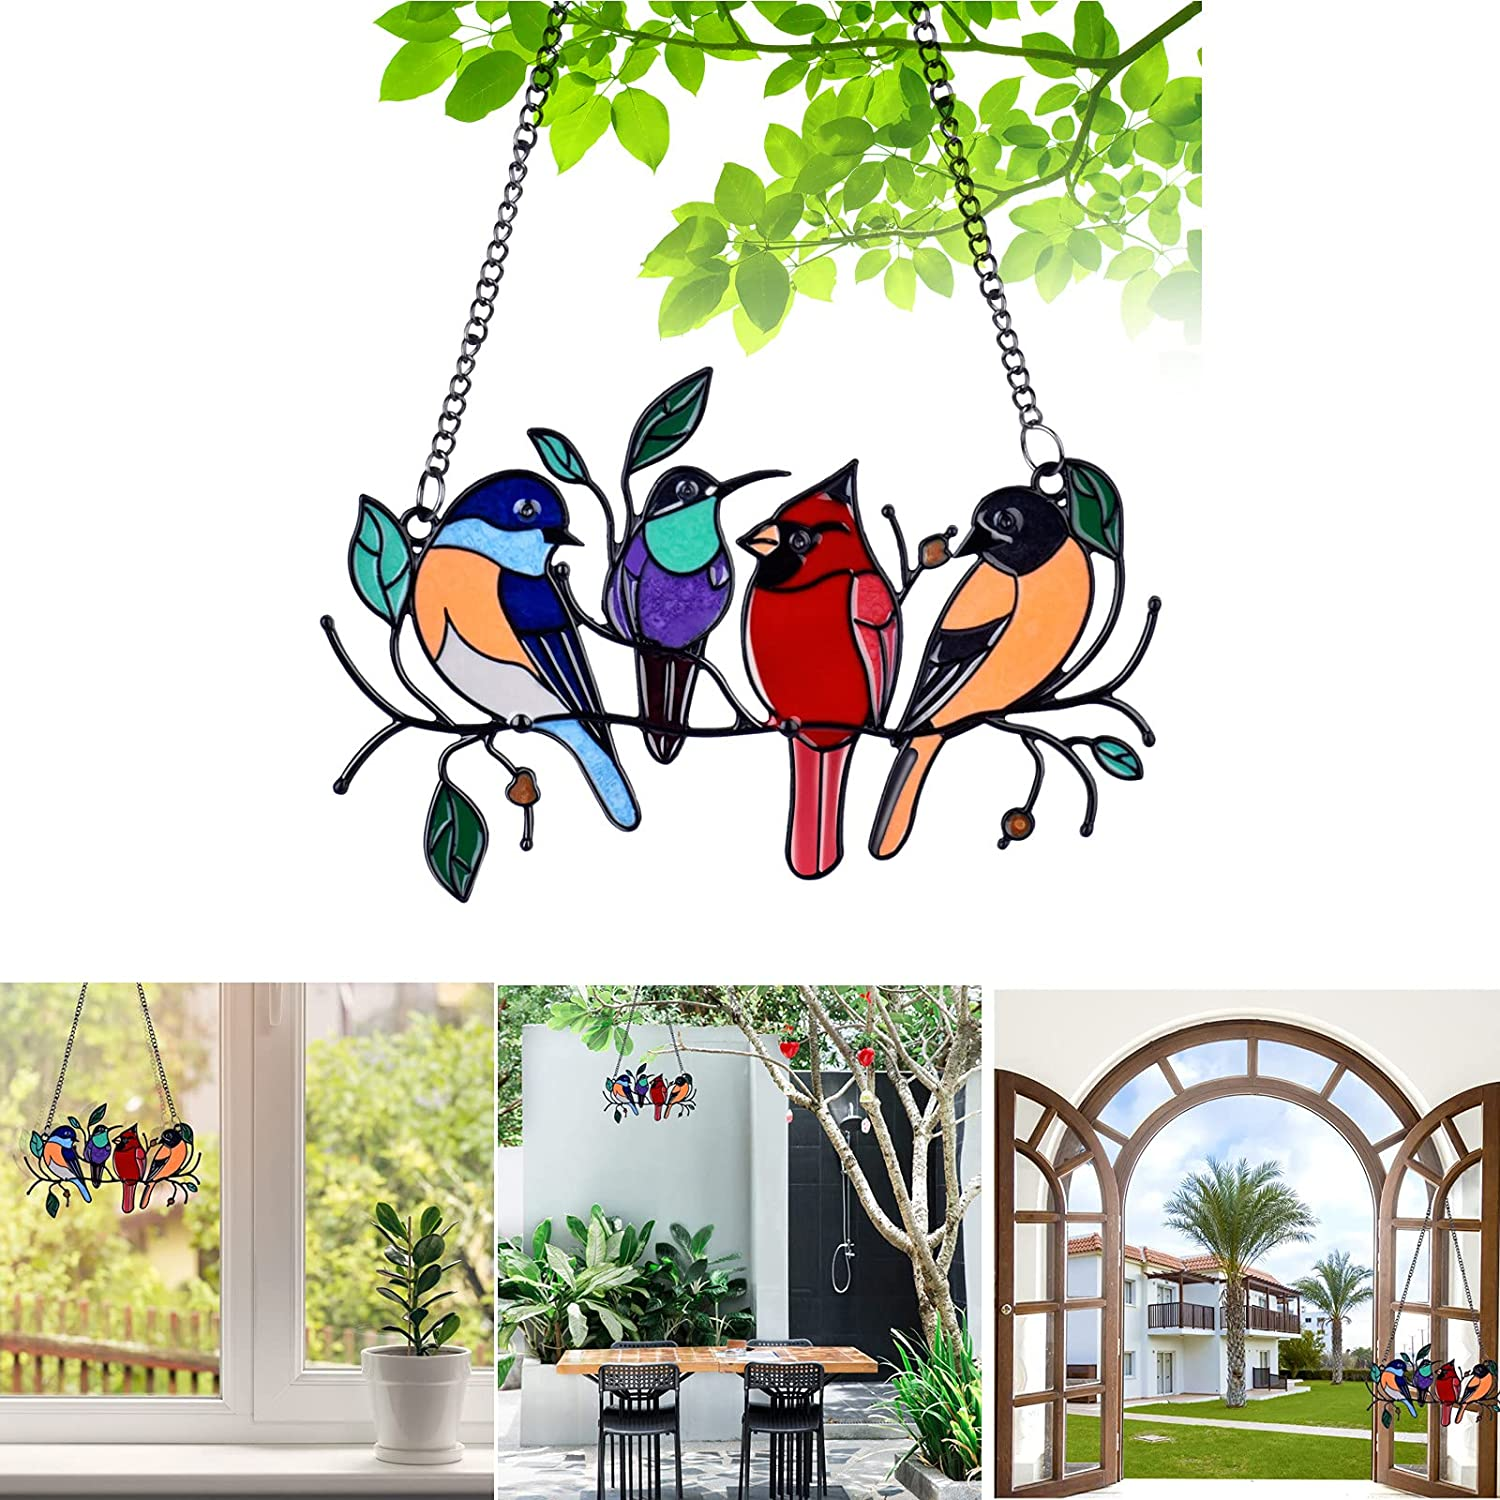 Bird Suncatcher for Windows, Window Hangings Suncatchers Panel with Multicolor Birds on a Wire High,Home Decoration Hummingbird with Chain